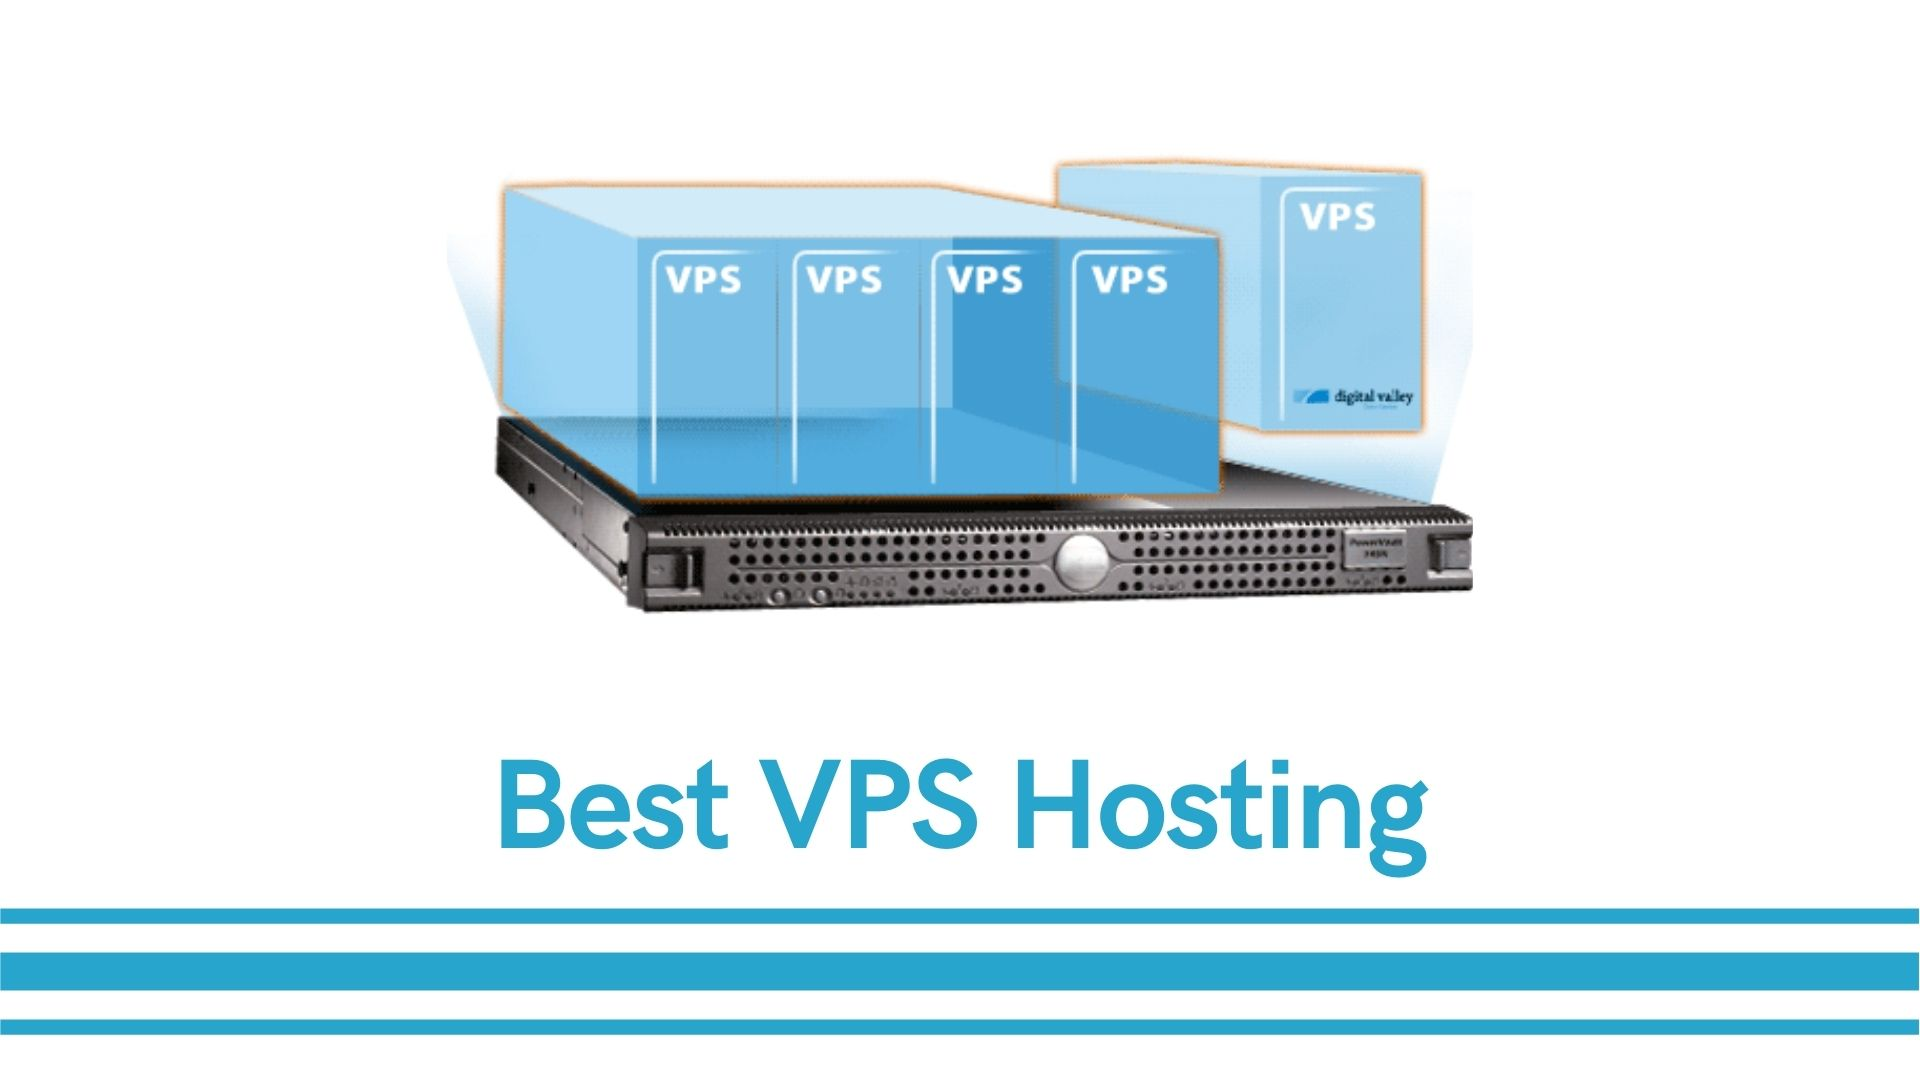 Top VPS Hosting Features